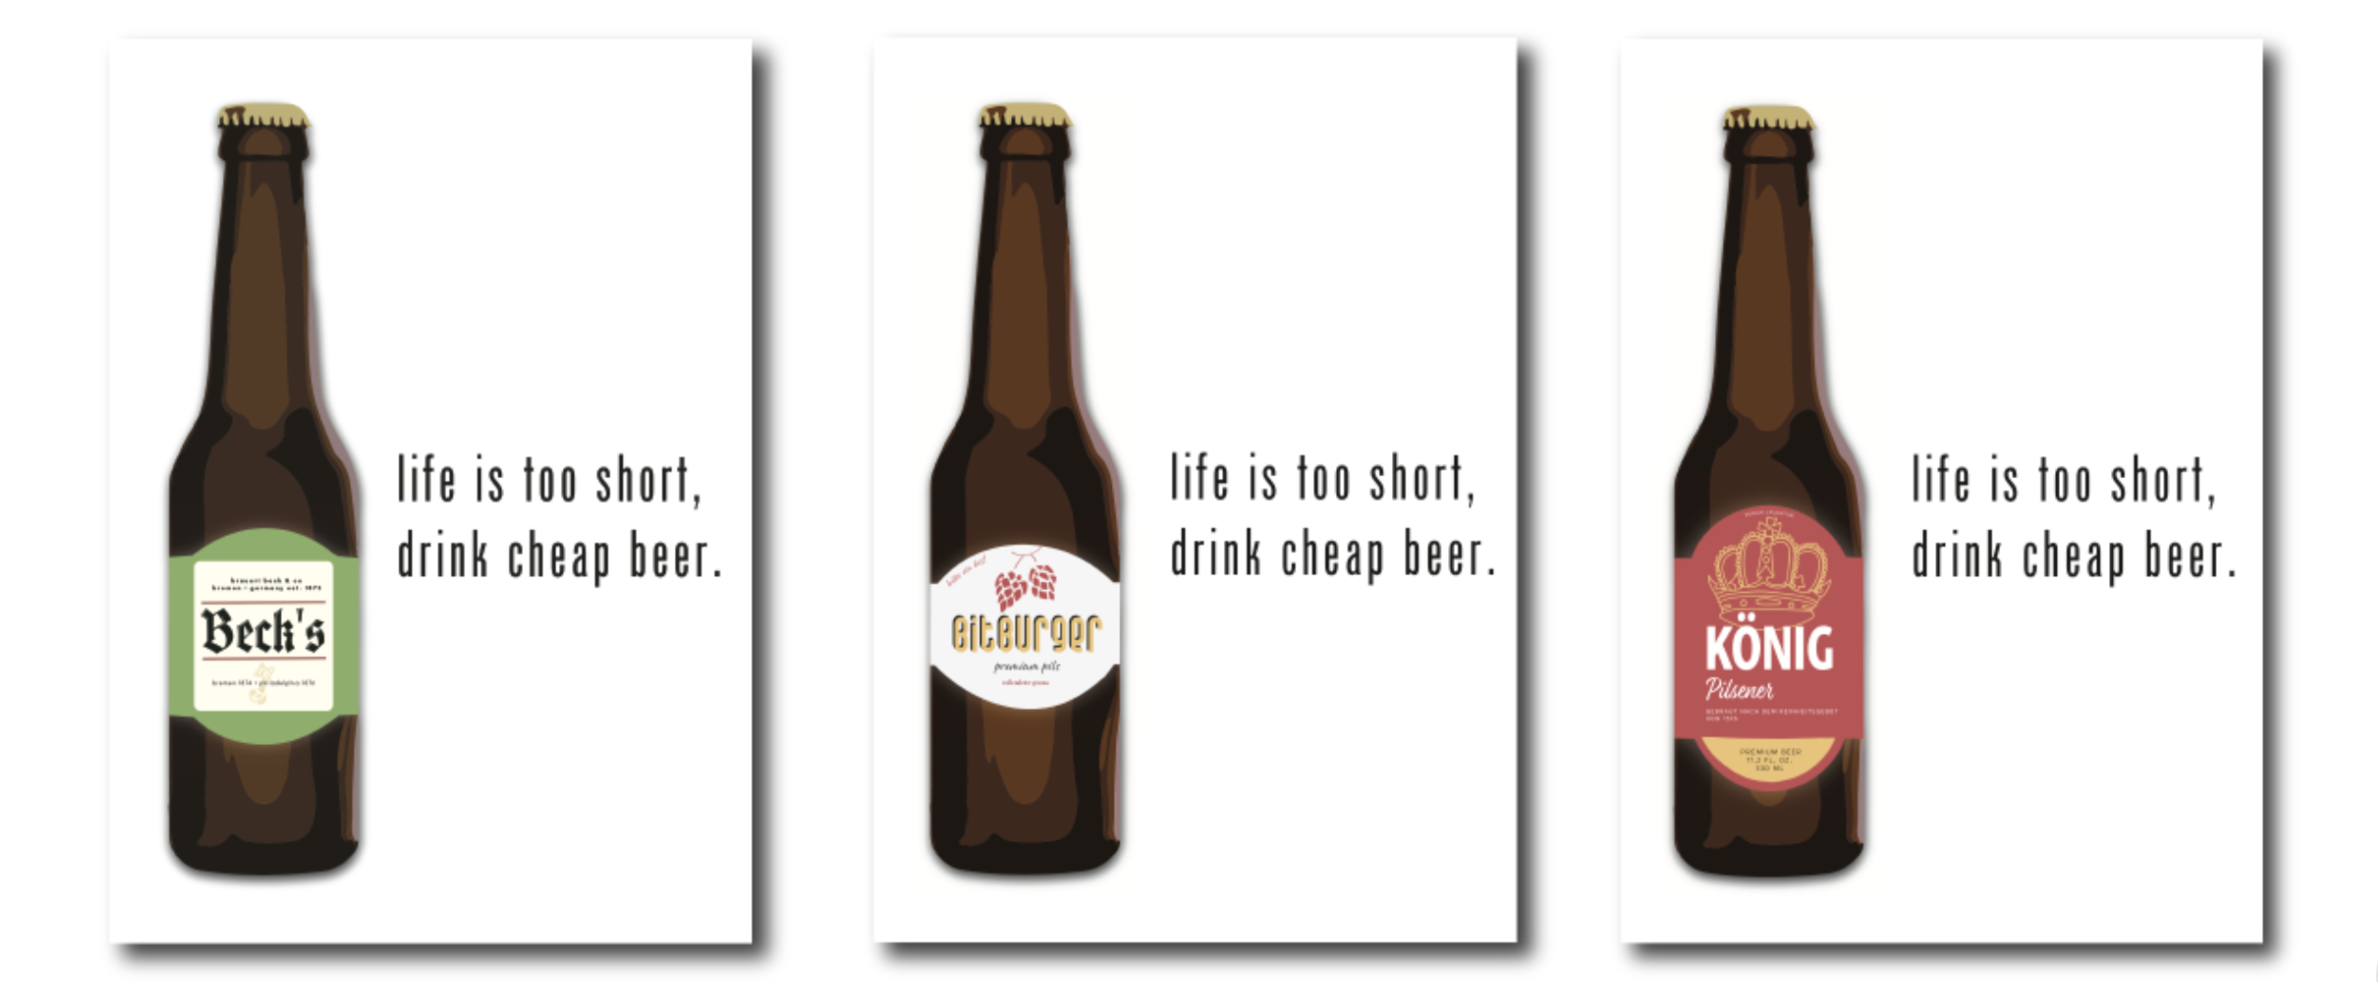 "These are my final posters for the project. The text, ""life is too short, drink cheap beer"" relates to German beer culture and the tensions that have been created between craft breweries in Berlin and people who believe that craft beer is part of an invasive, hipster culture in the city."